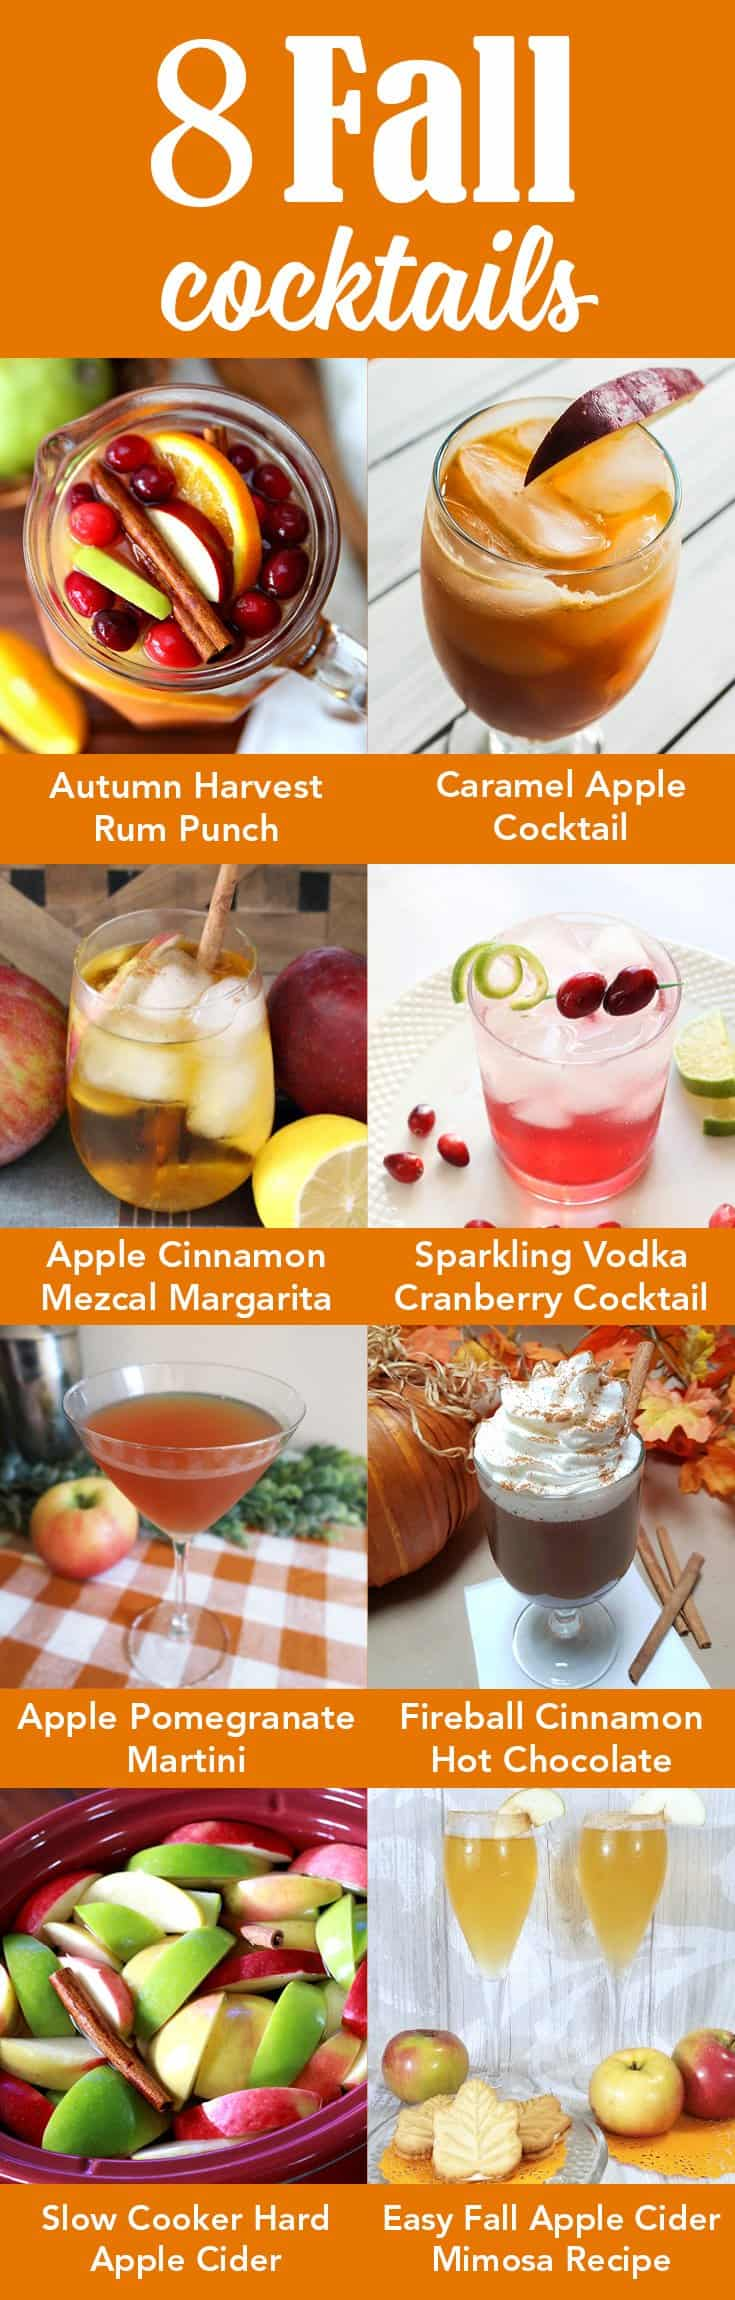 8 fall cocktails